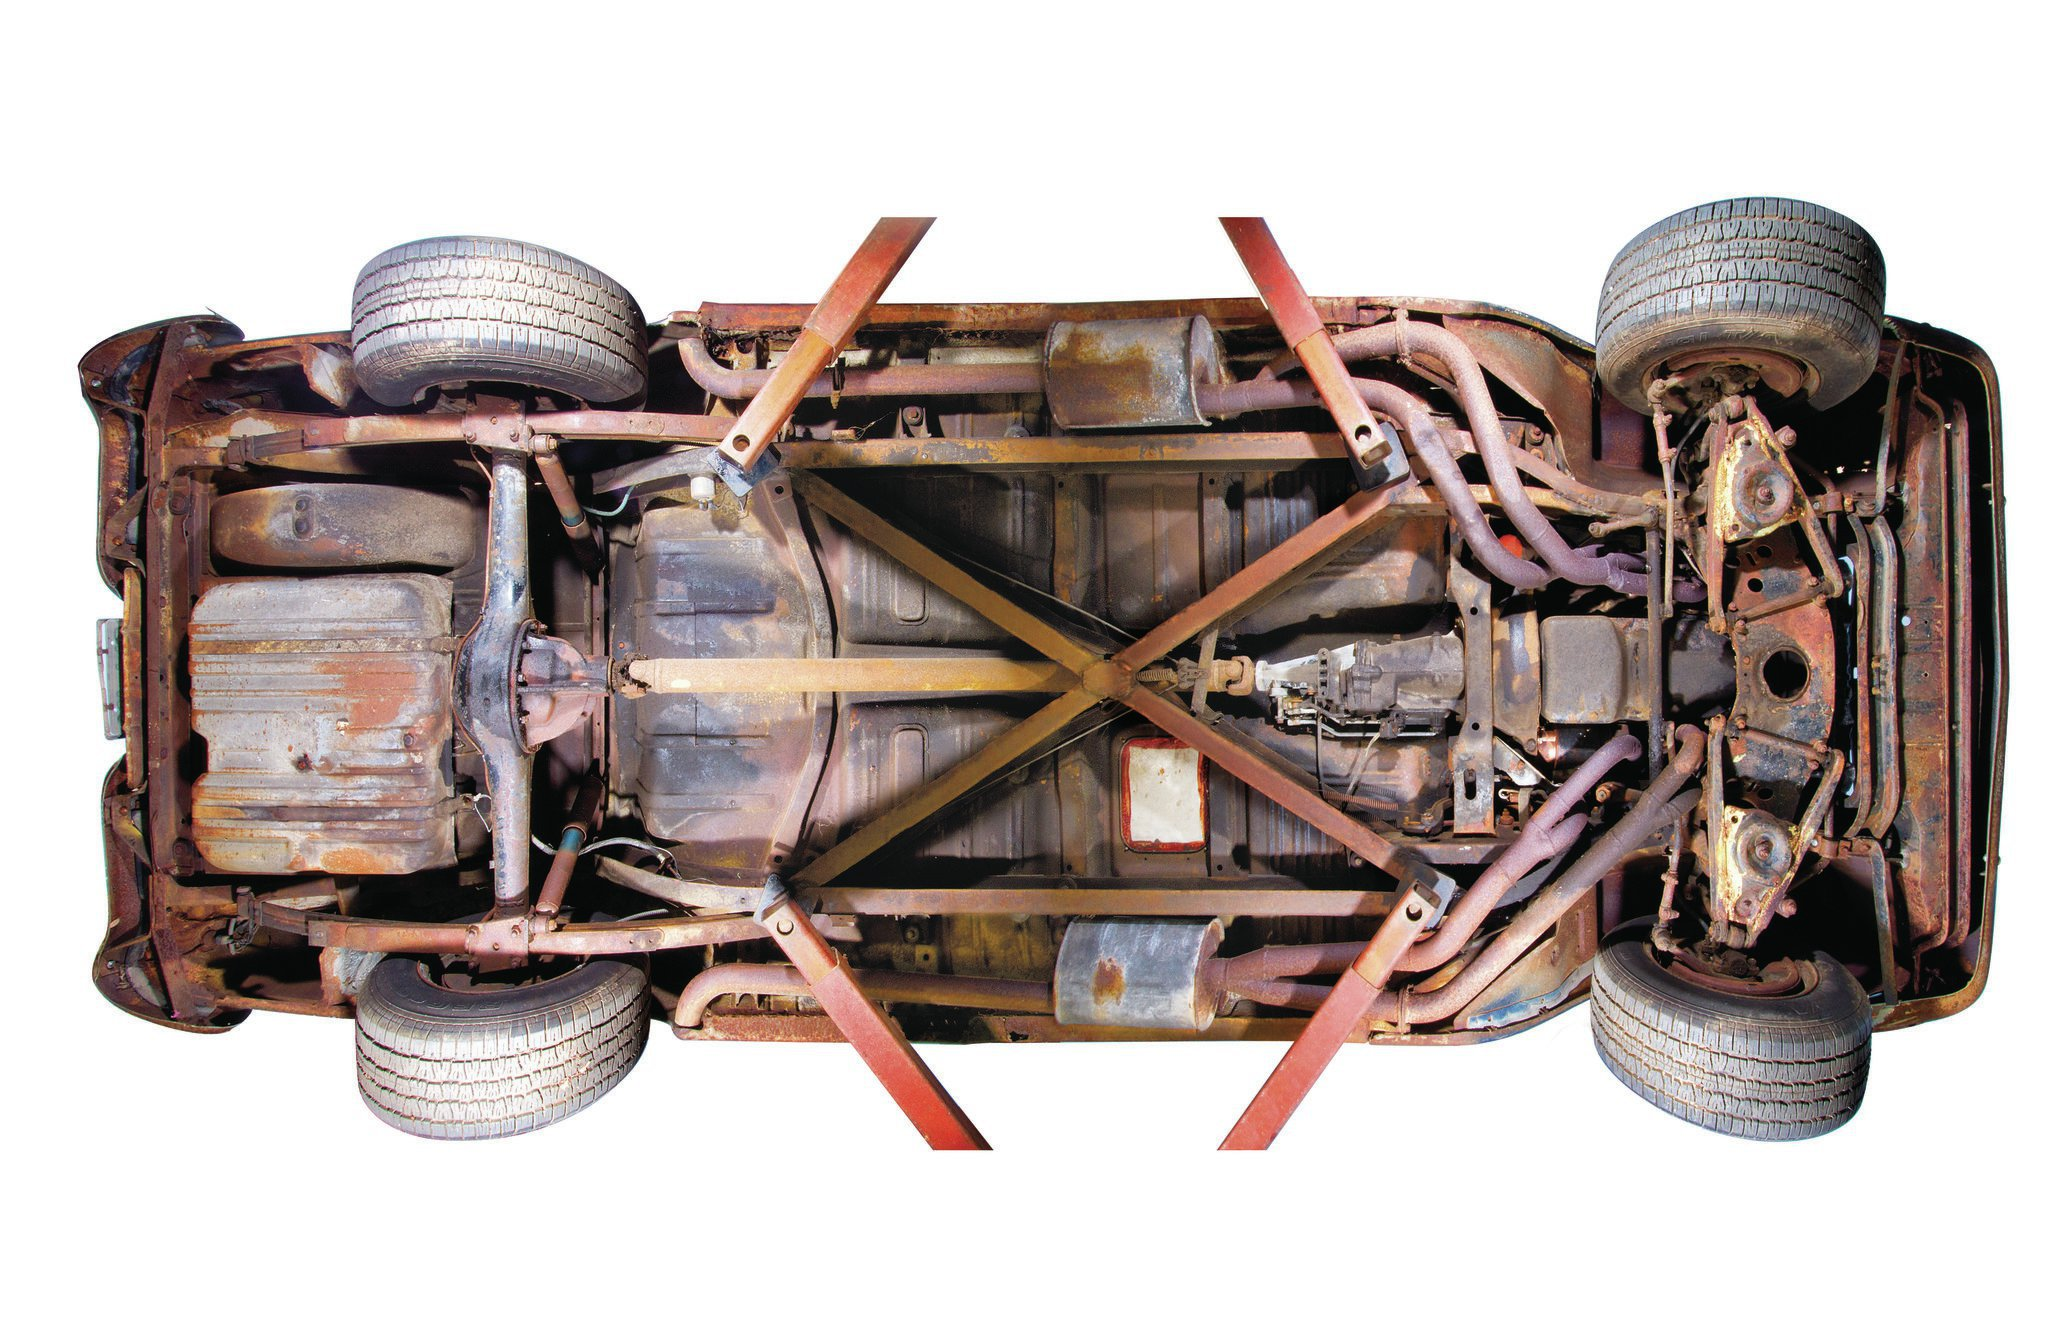 Though the car shows the rust of being stored near the coast, the car's tri-Y headers and side-mounted exhaust are still intact.